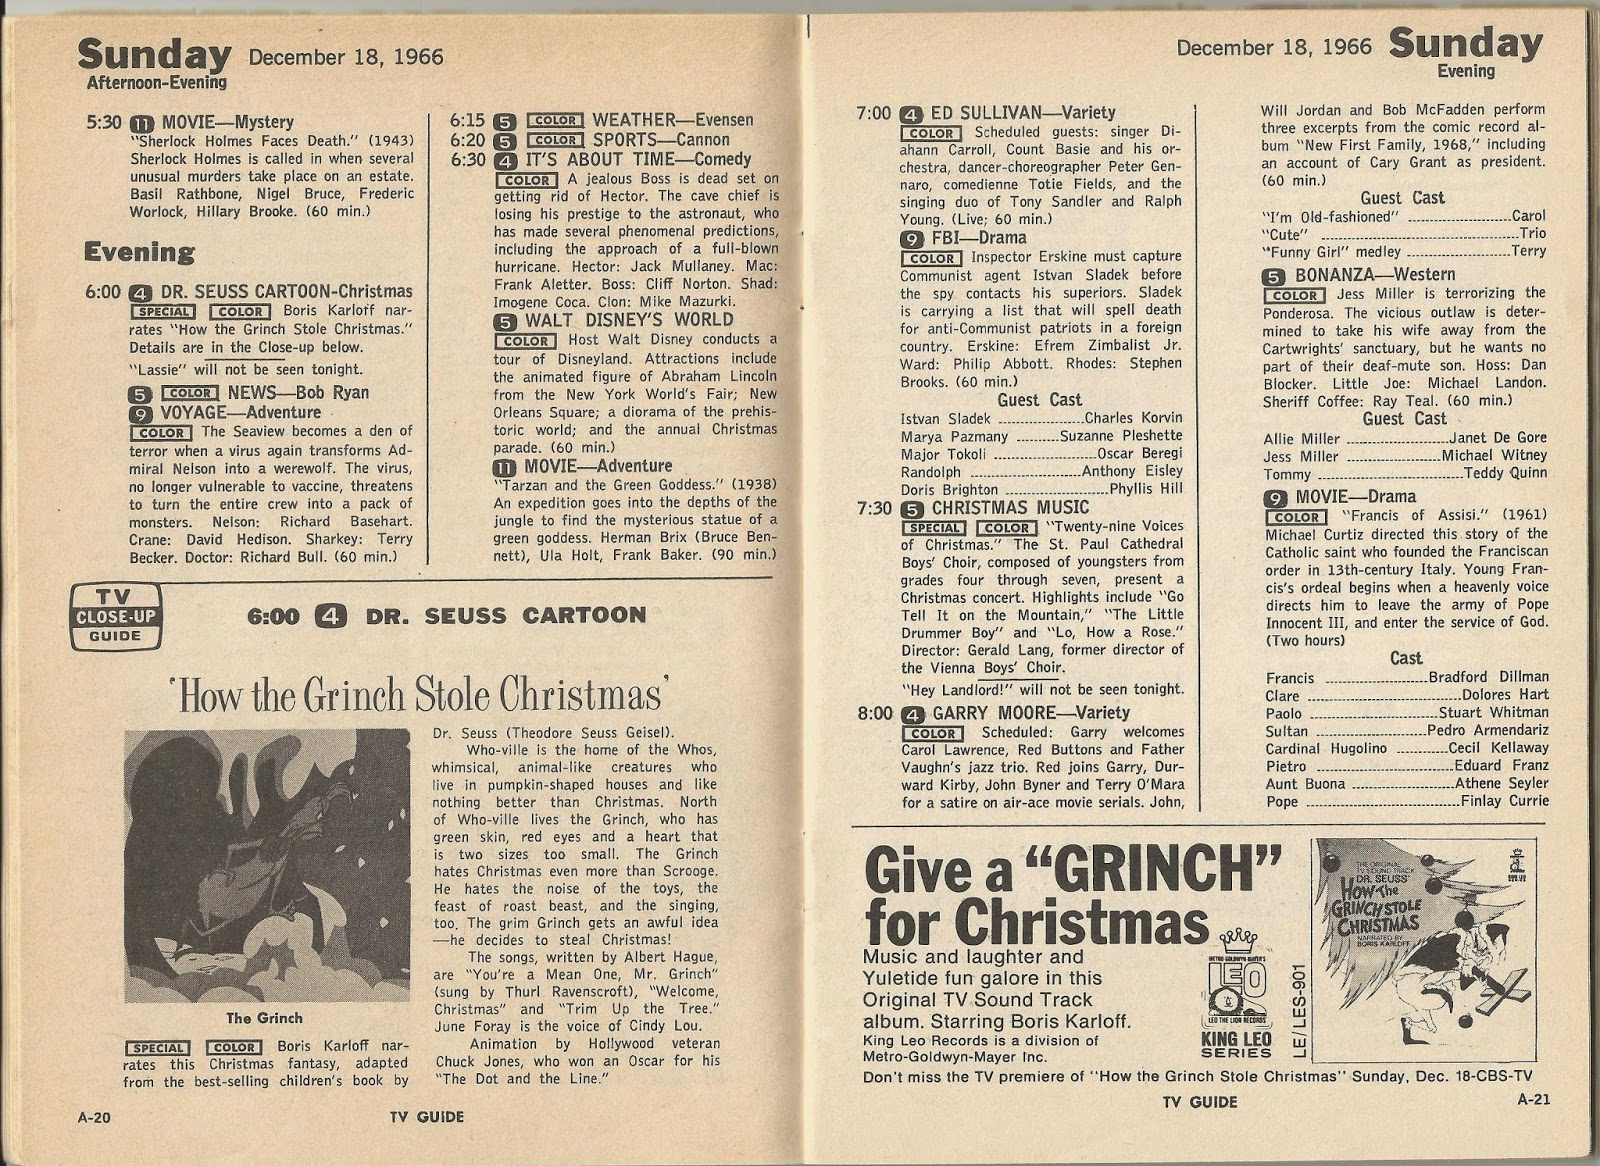 the issue of tv guide from that week december 17 23 1966 featured a close up of the special along with an ad for the soundtrack album in its local - When Does How The Grinch Stole Christmas Come On Tv